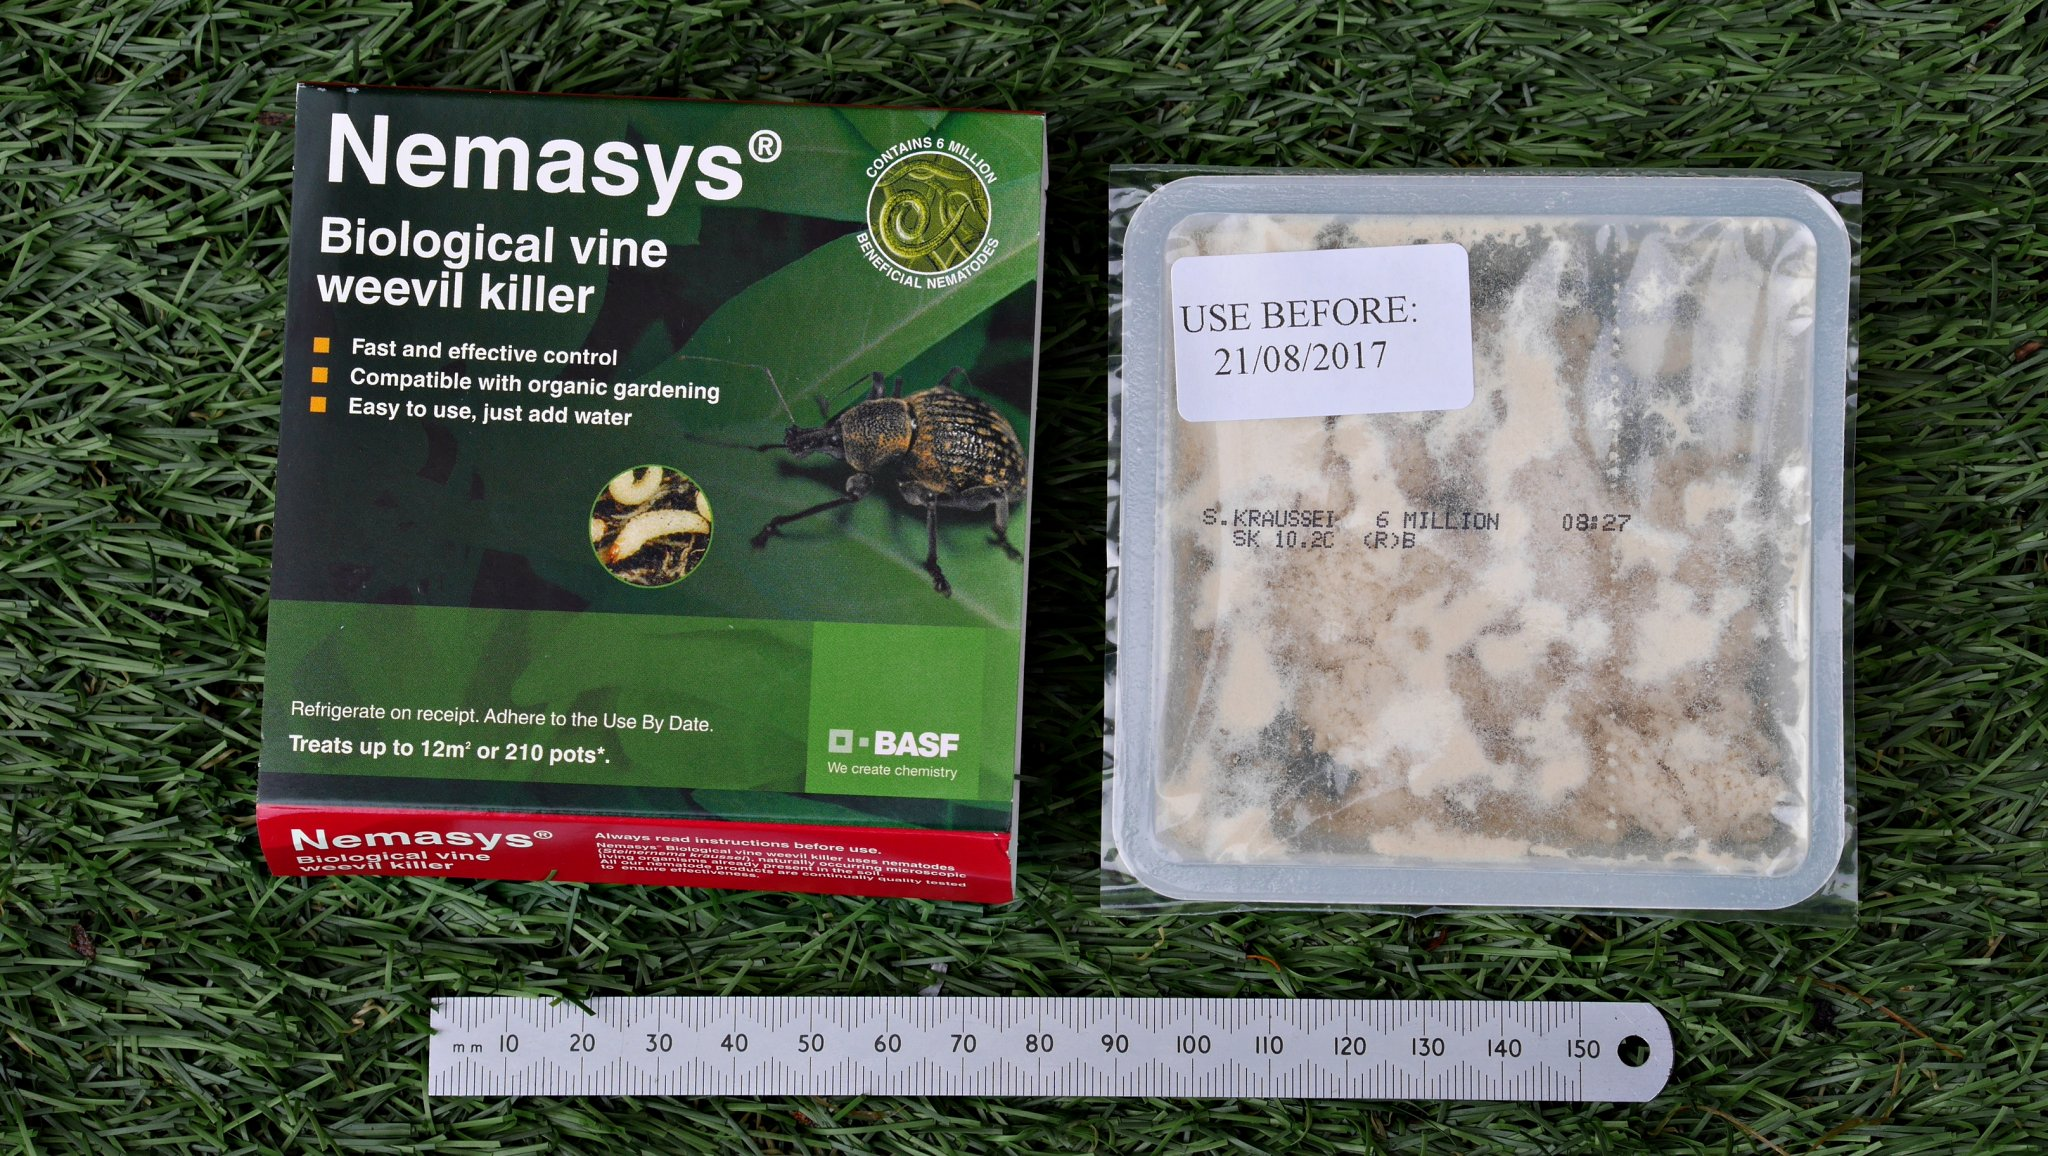 20170728-p1950507-nematodes-packet